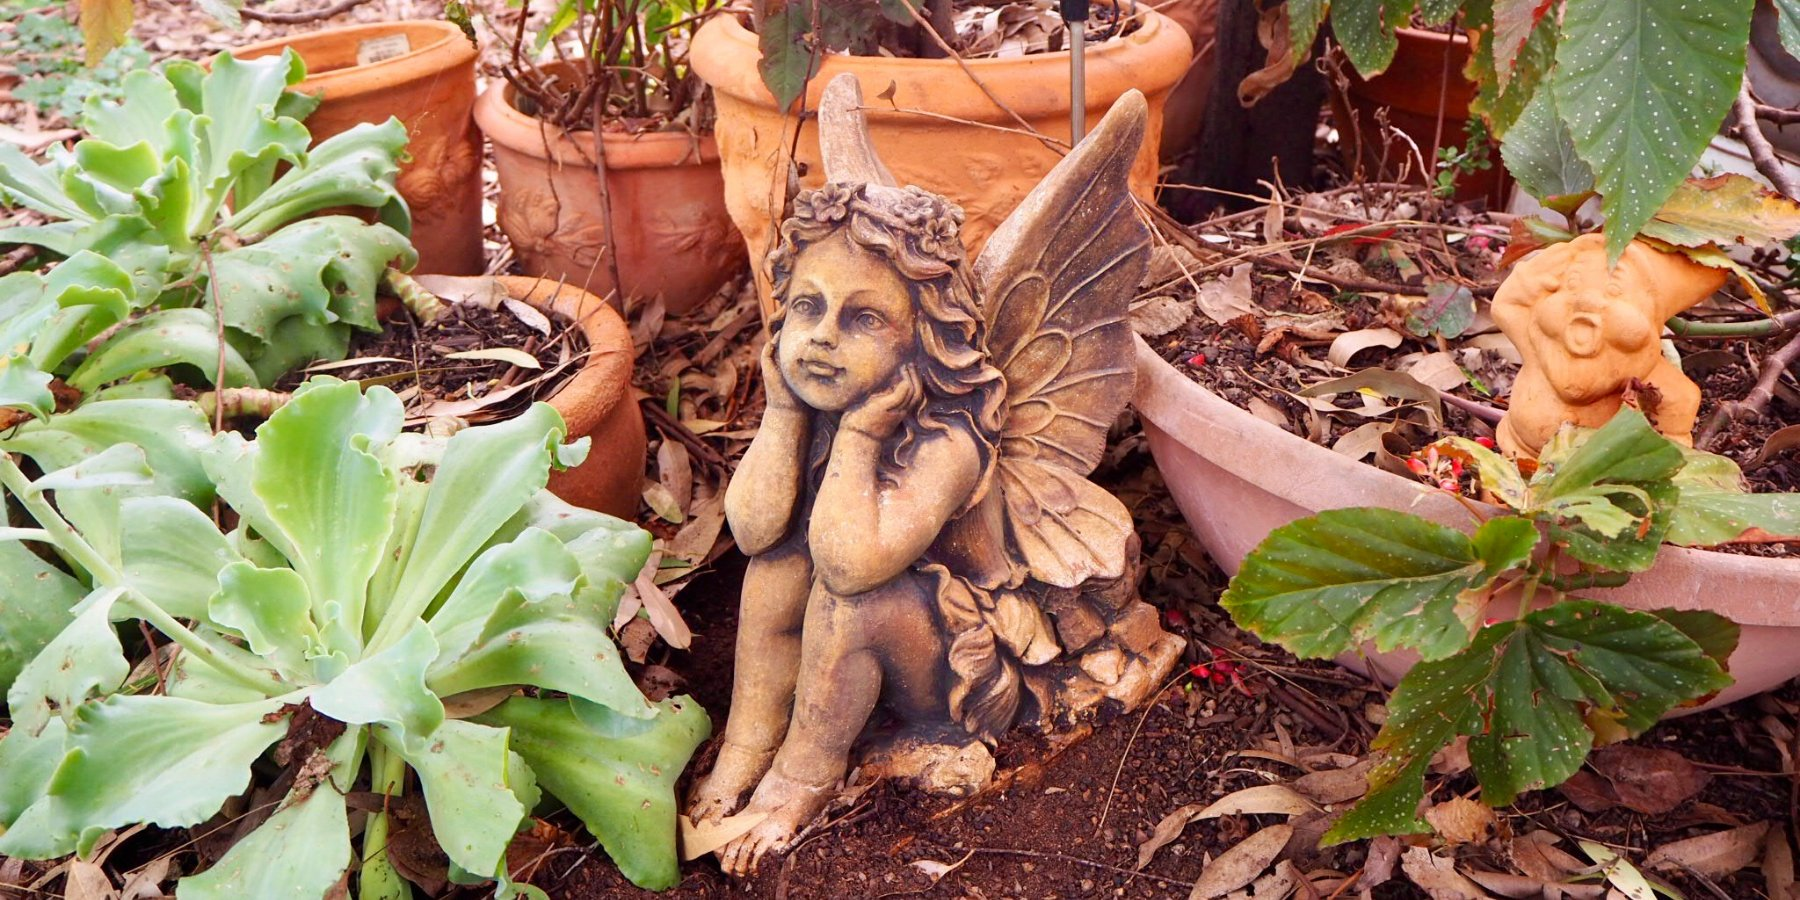 Create your Magic Garden with Fairies and Elves